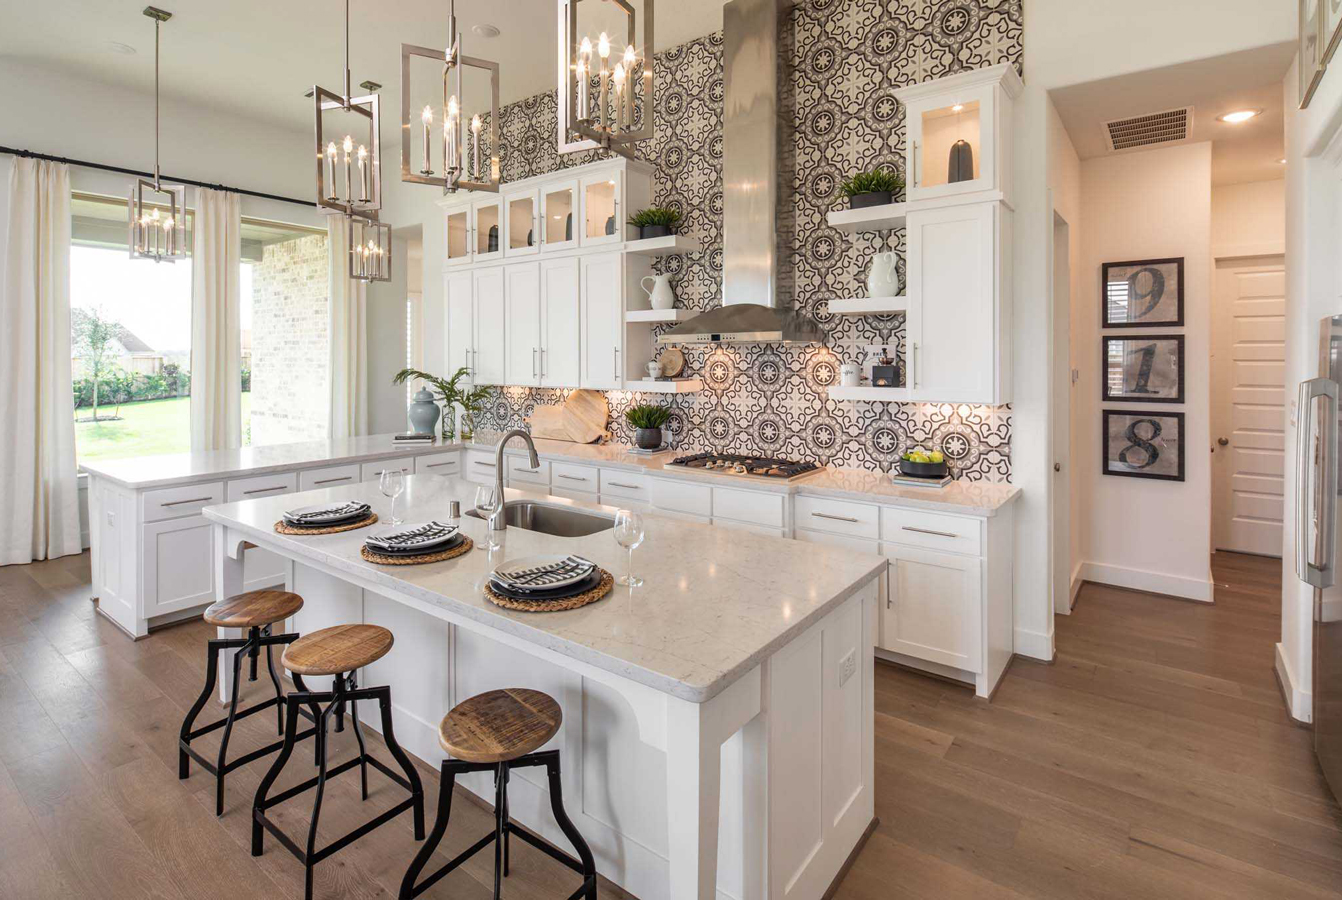 Cane Island Kitchen Design